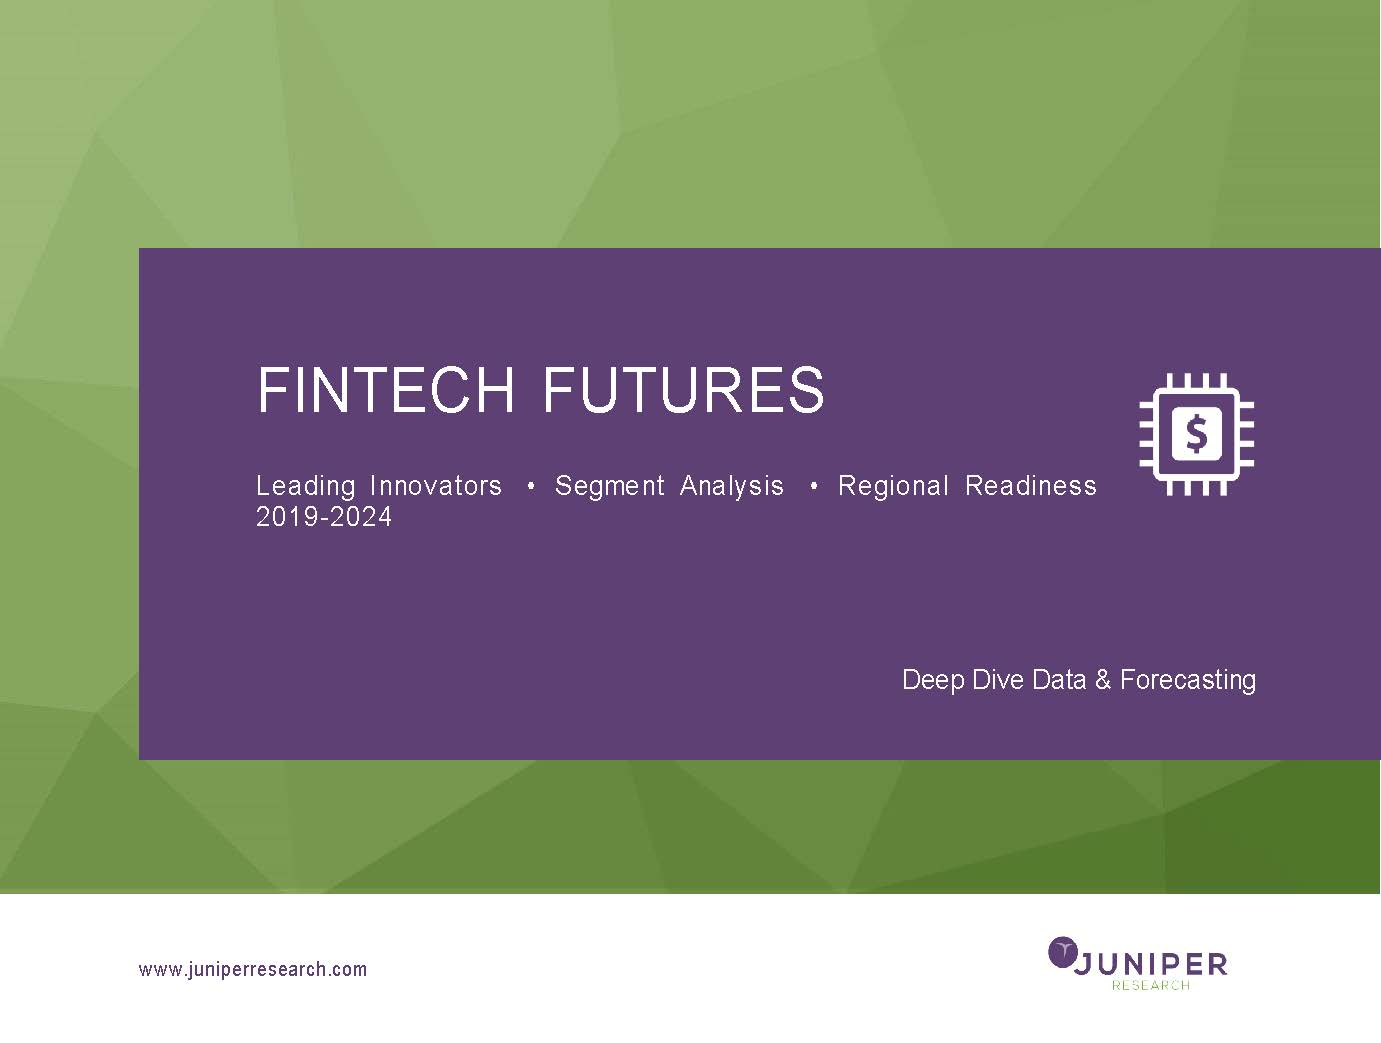 Fintech Futures - Deep Dive Data & Forecasting 2019-2024